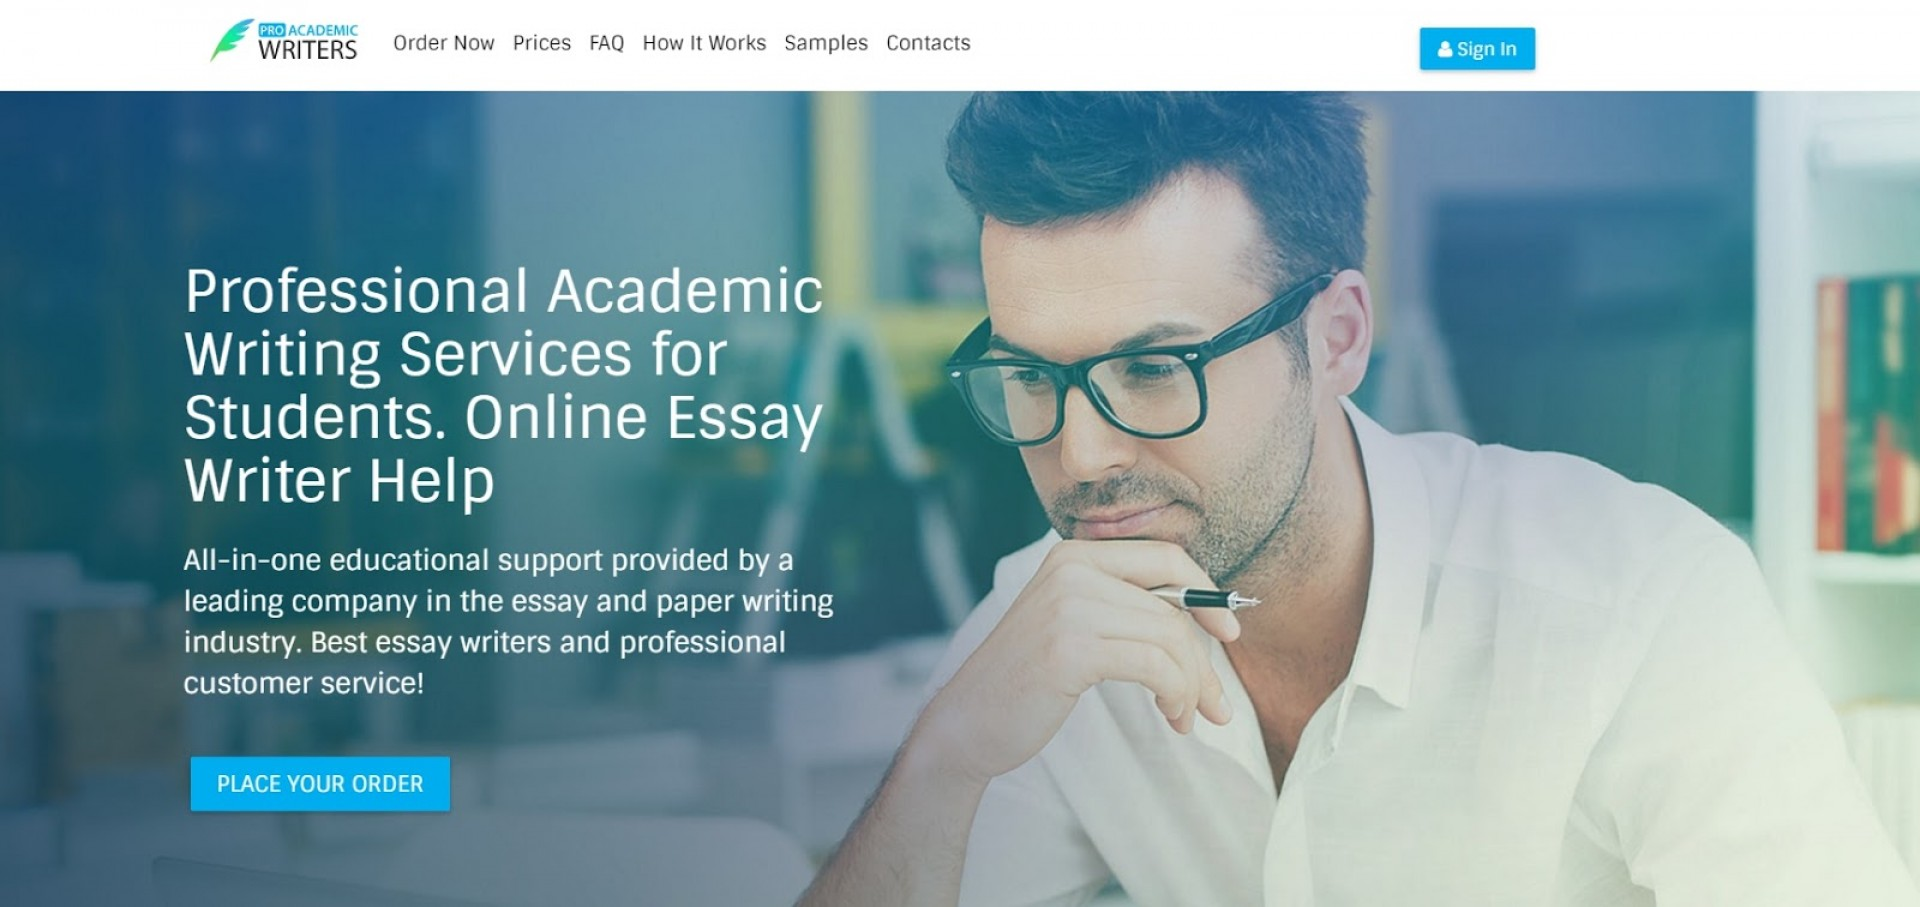 007 Essay Writing Services Example Pro Academic Stupendous Reddit Custom Canada Reviews Uk 1920